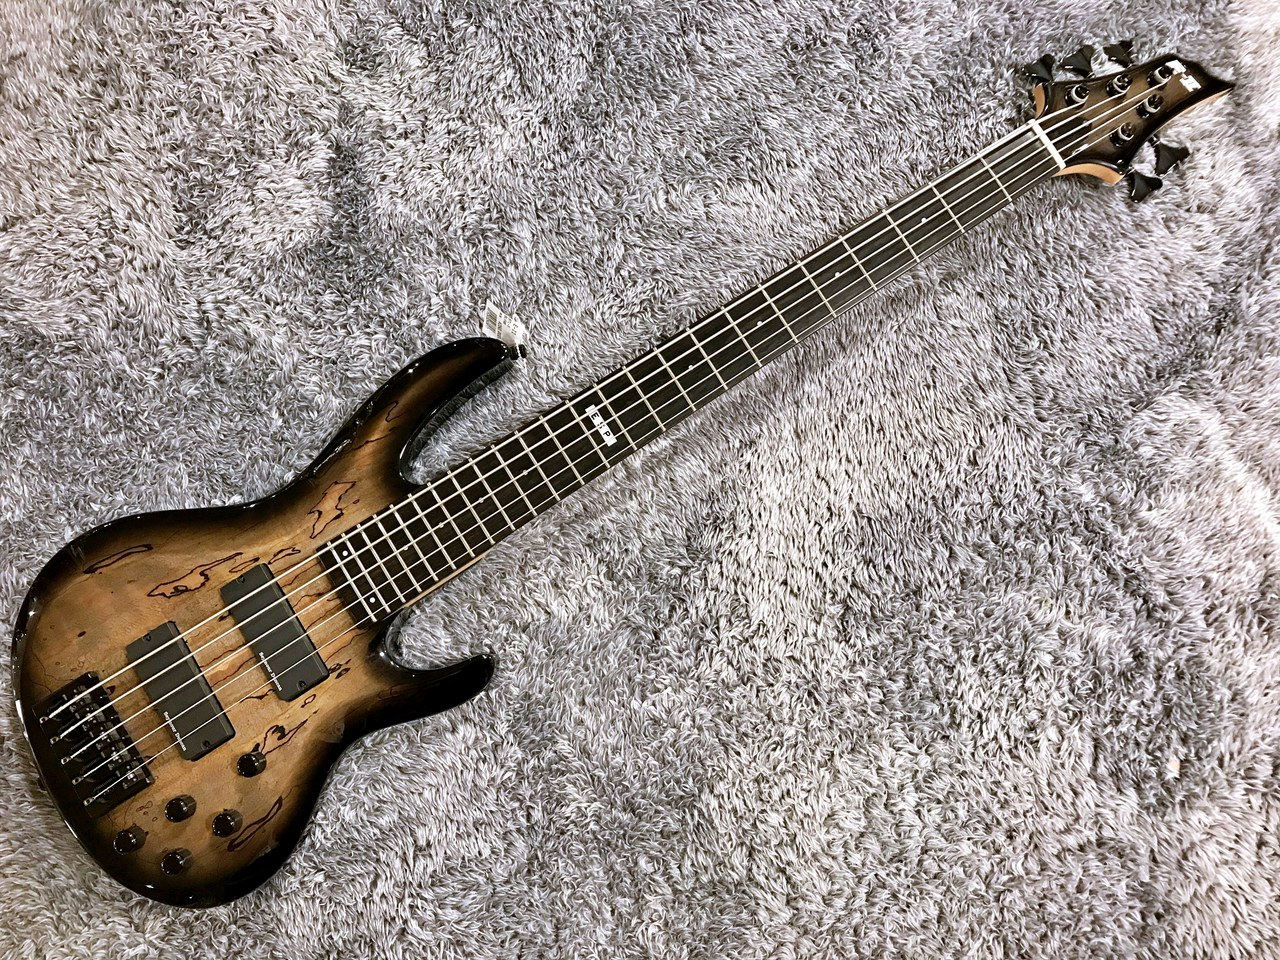 E-II BTL-5 BLKNB (Black Natural Burst)-Bottom Line Series-【アウトレット特価】【日本製】